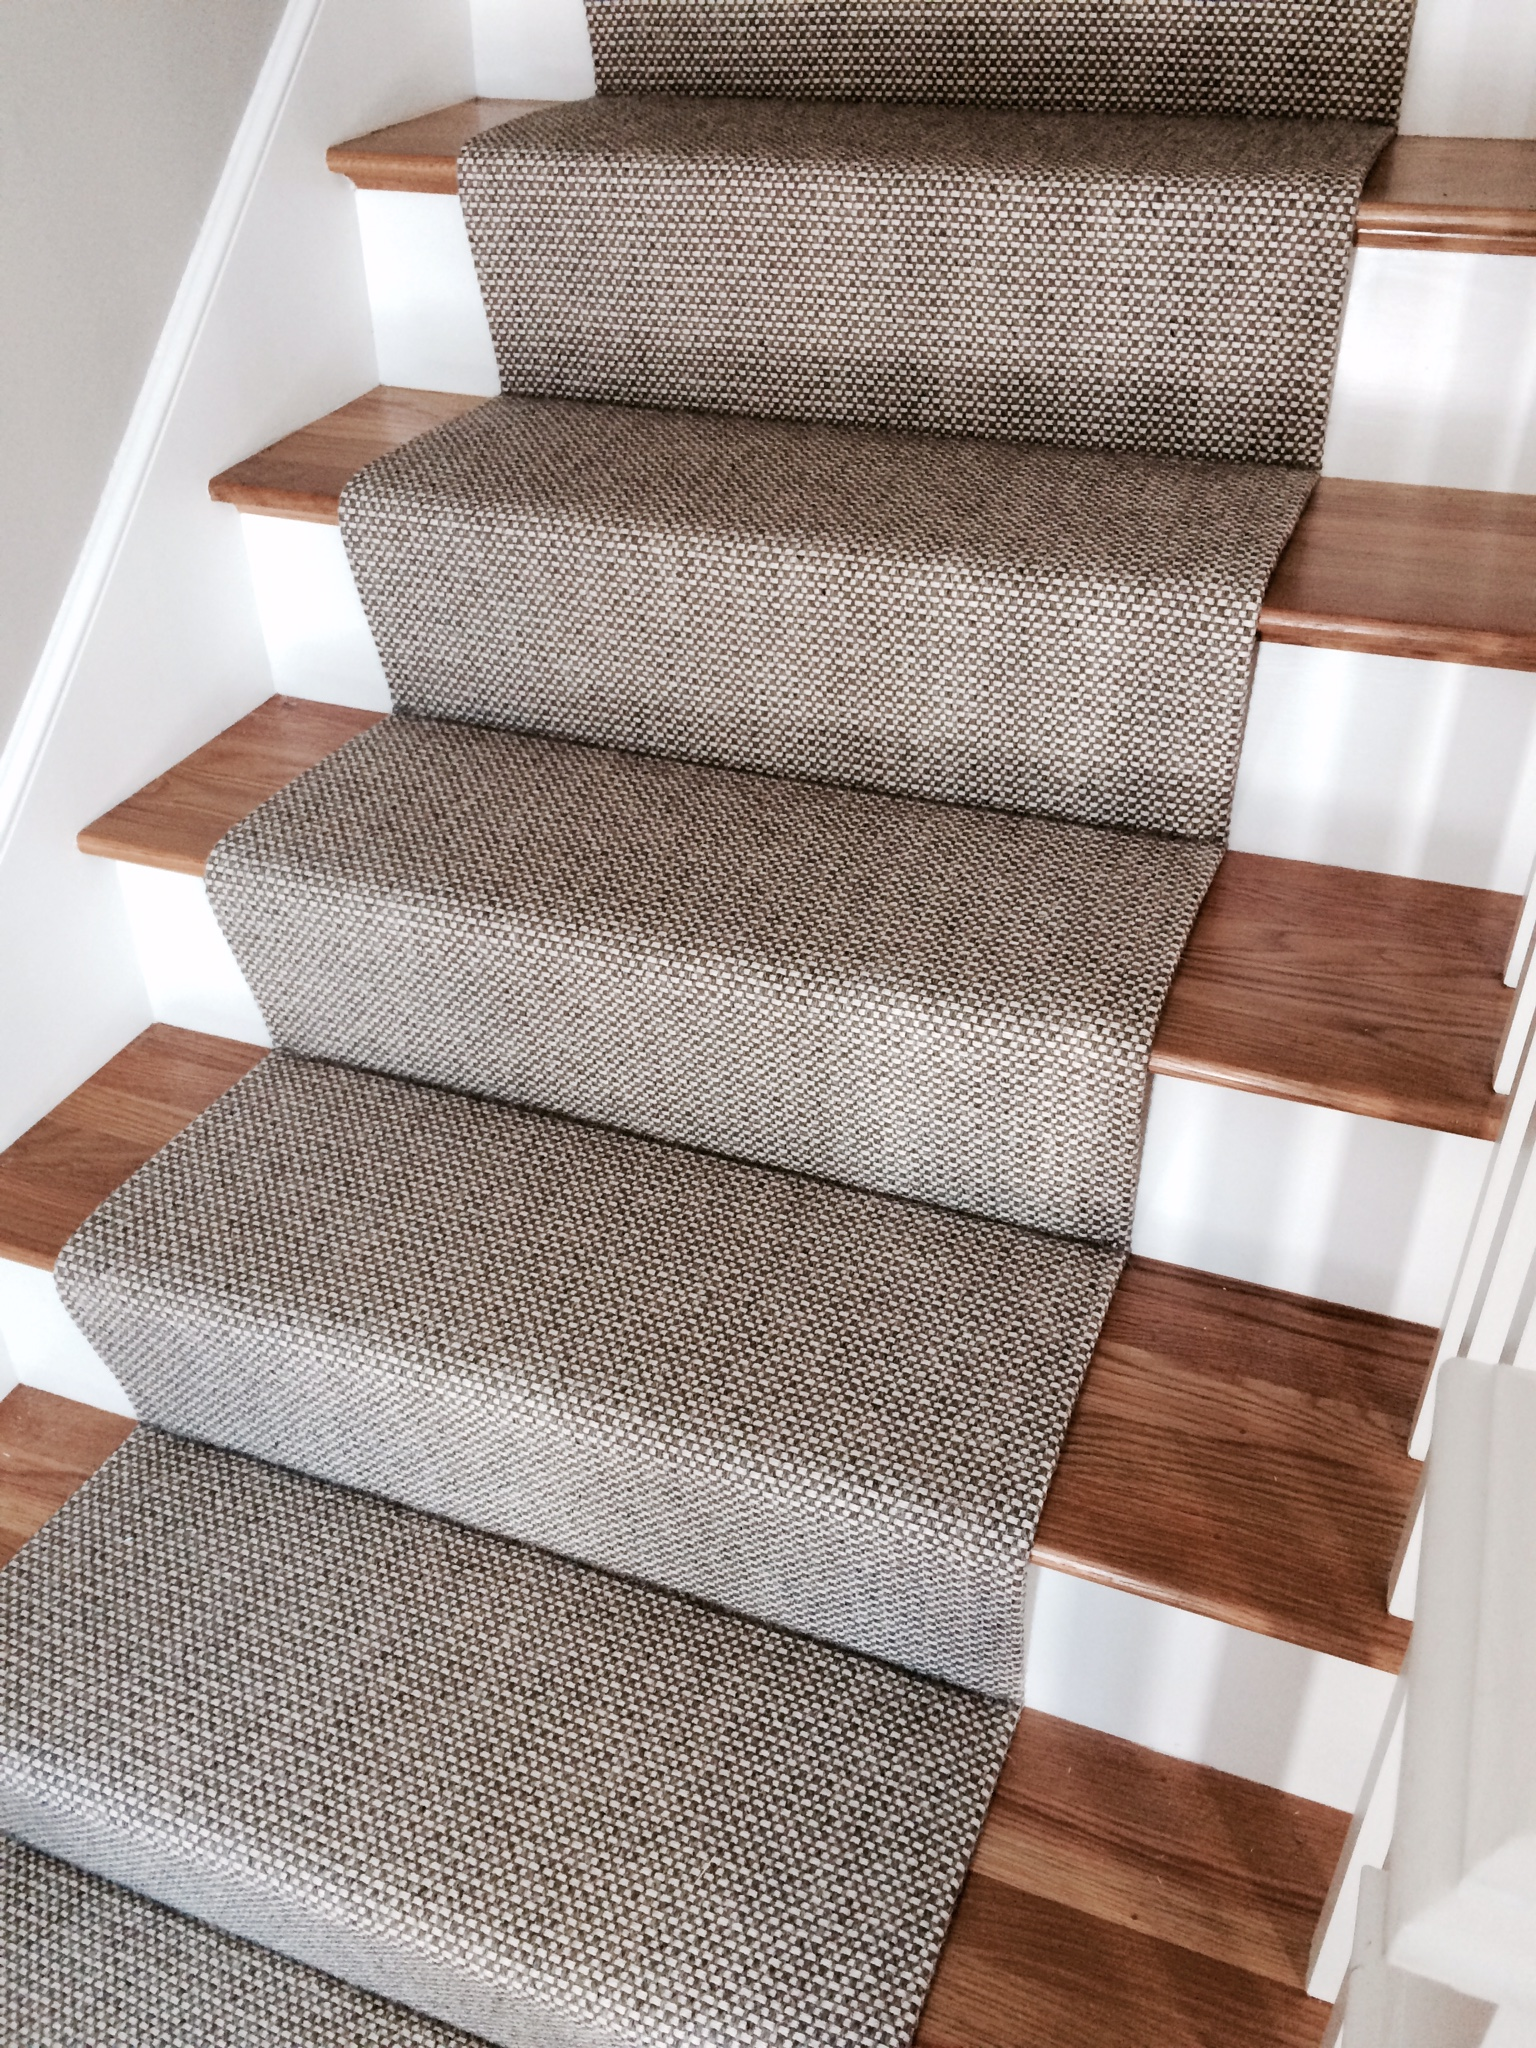 Indoor Outdoor Carpet Runners For Stairs - Outdoor Designs